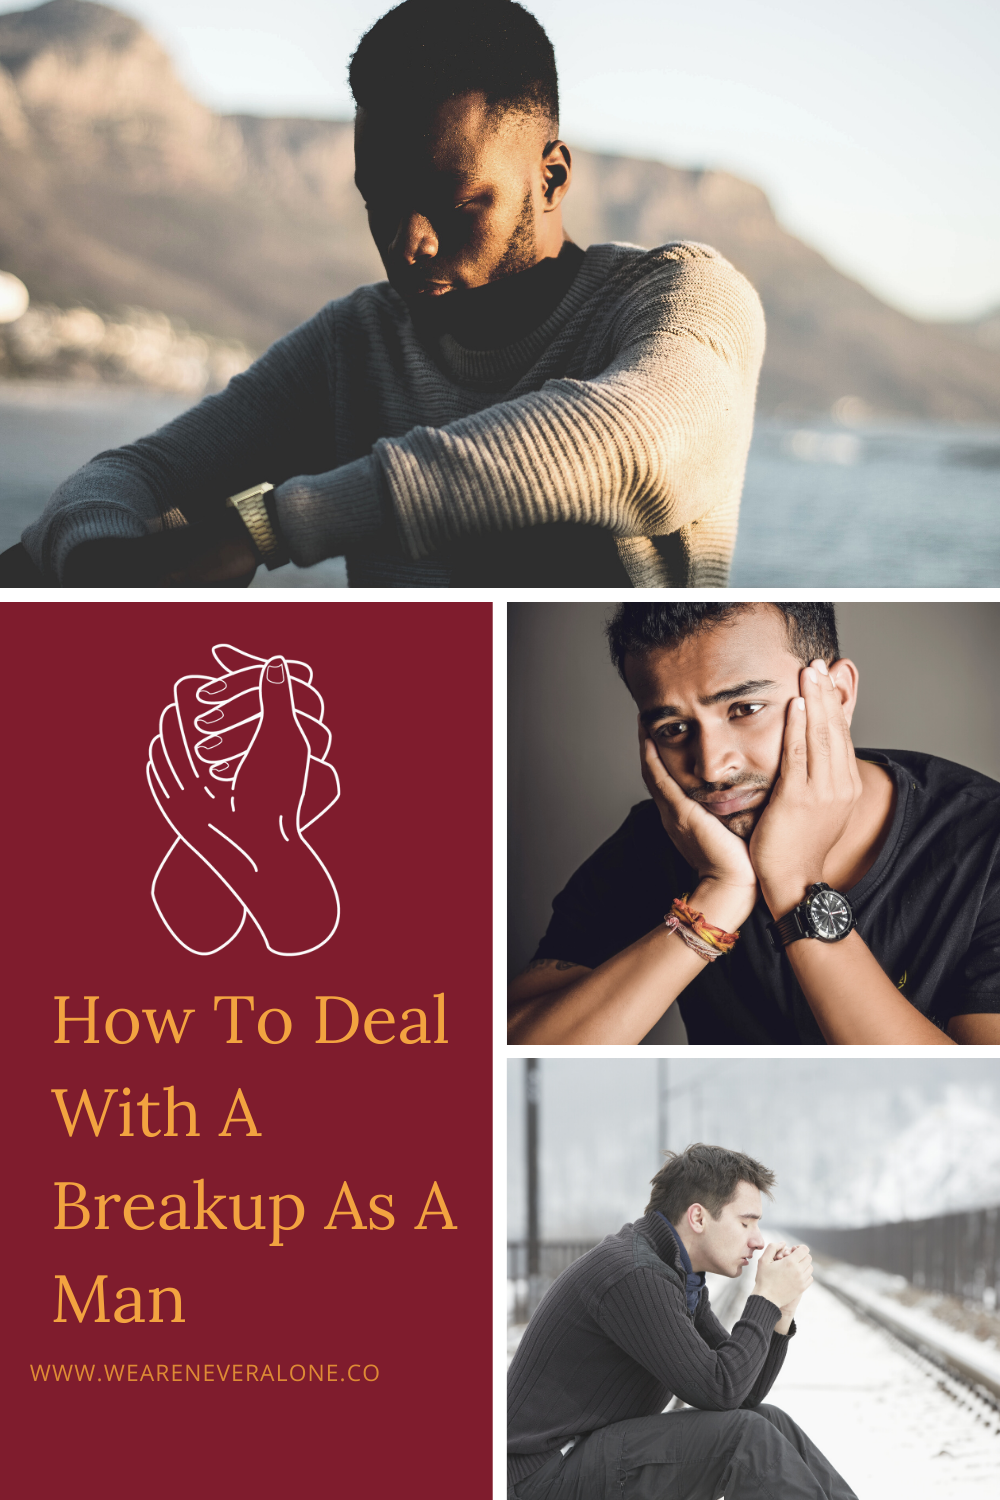 This is how to deal with a breakup as a man